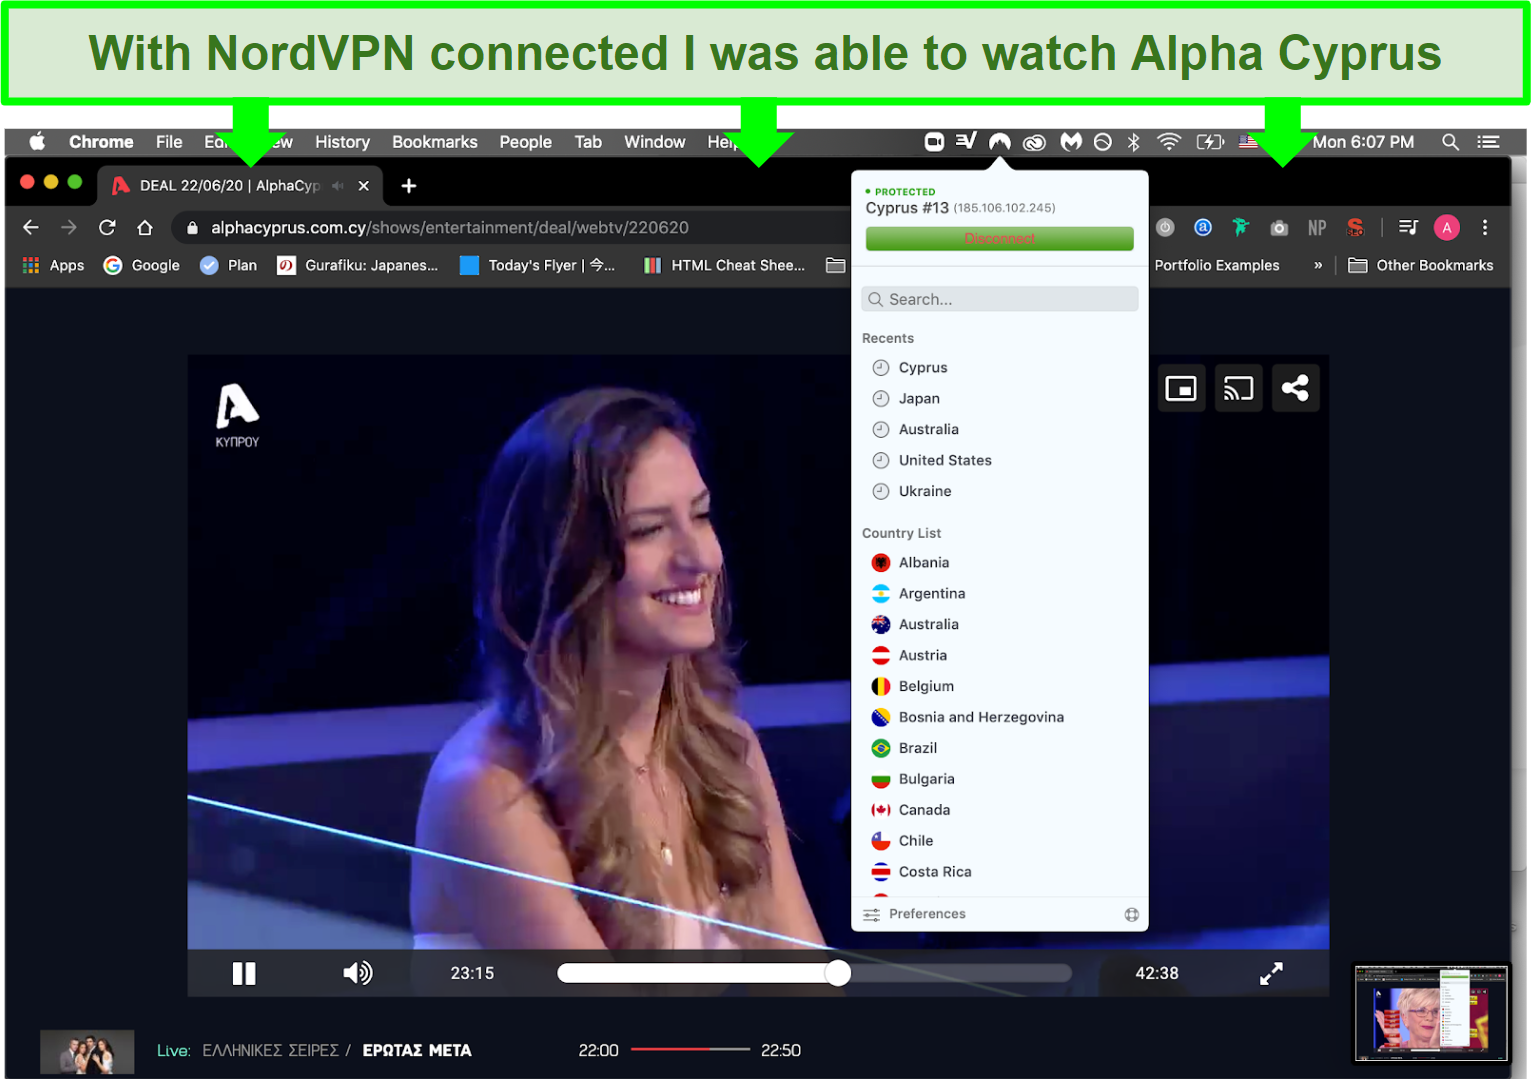 A screenshot of Deal playing on Alpha Cyprus using NordVPN